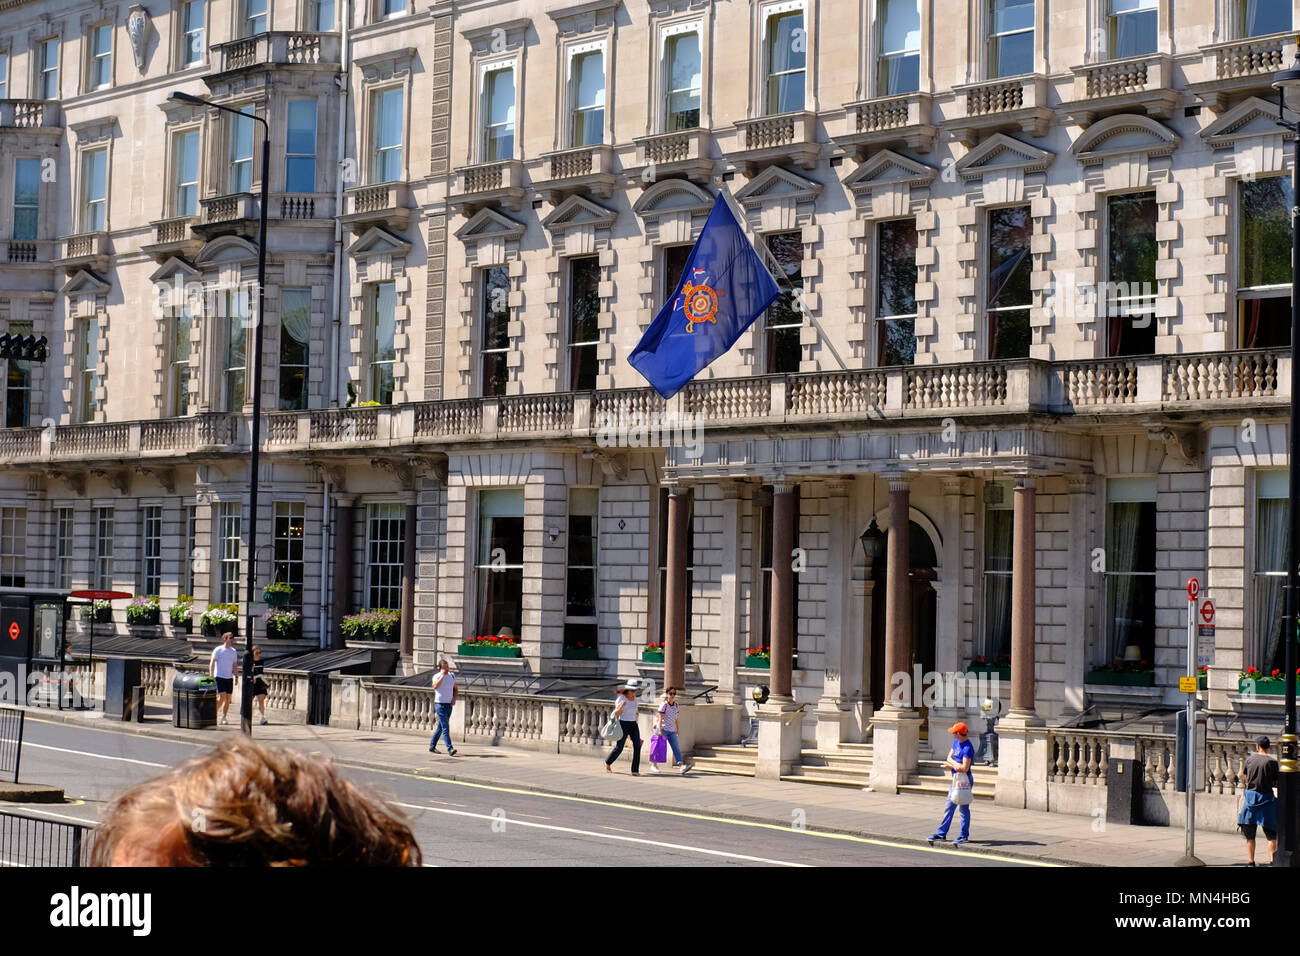 The Cavalry and Guards Club, Piccadilly, London, England, UK - Stock Image